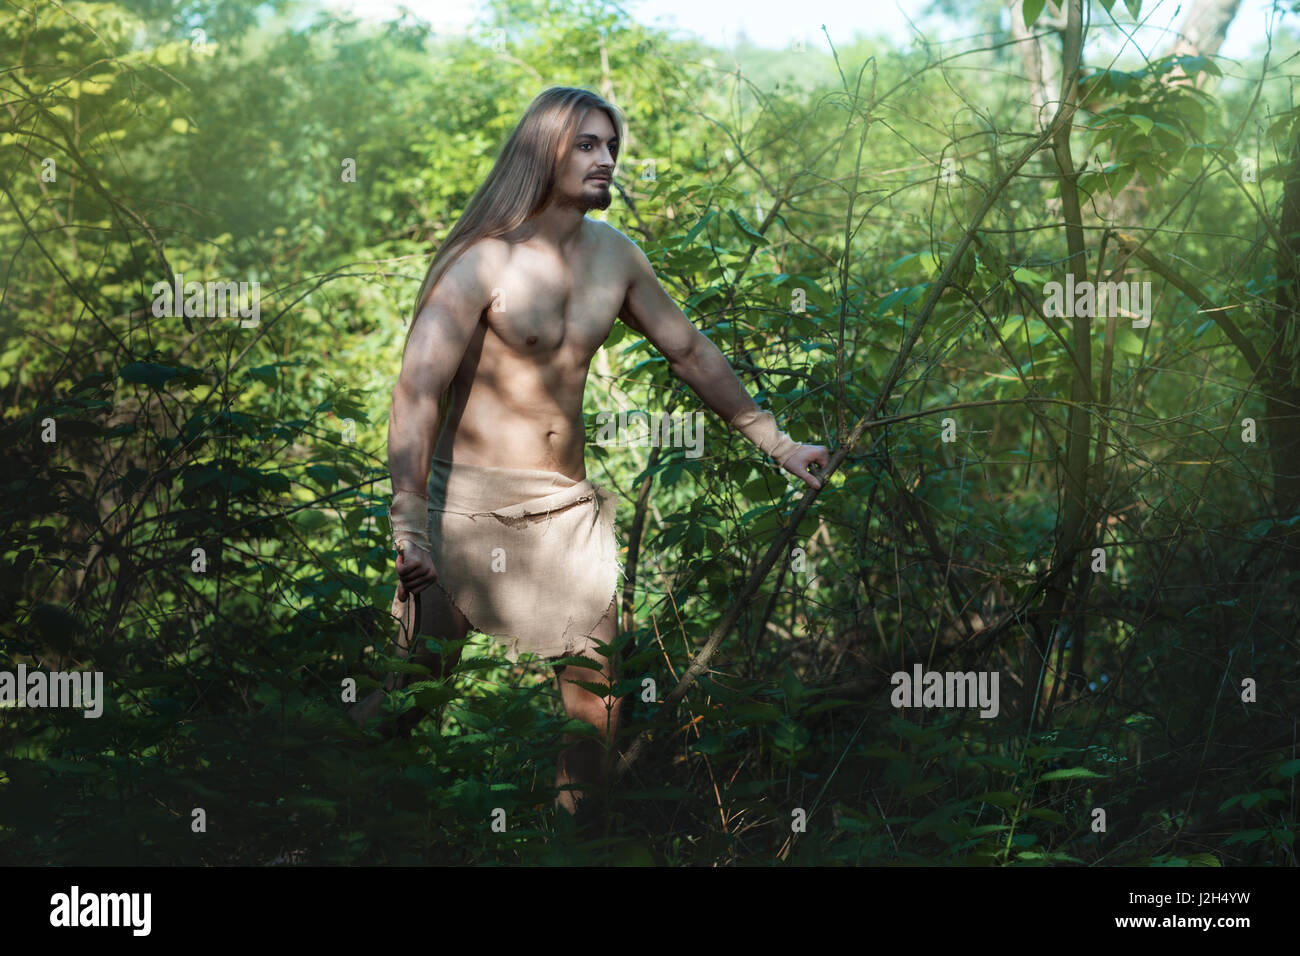 European man became wild, and lives in the forest. - Stock Image